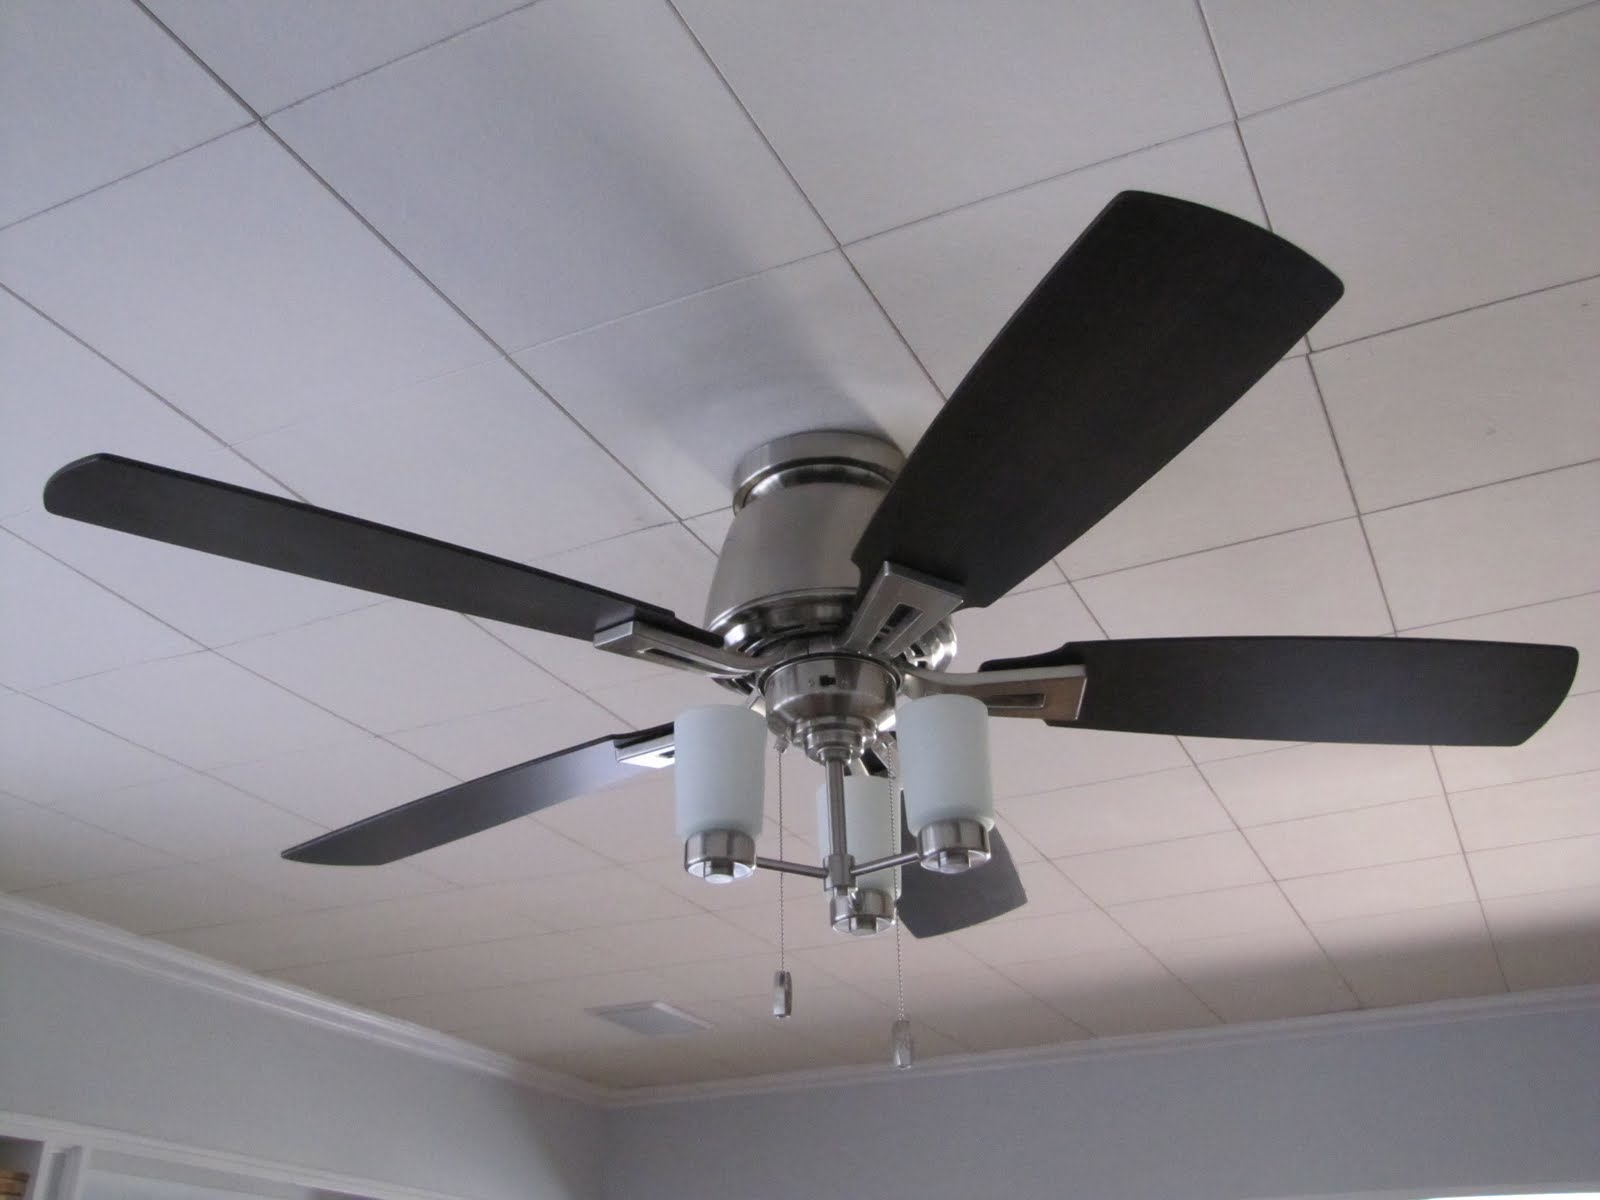 Hunting Trip A Look At The Earlier Hunter Ceiling Fan Light Wiring With And Remote What Are Features Fans